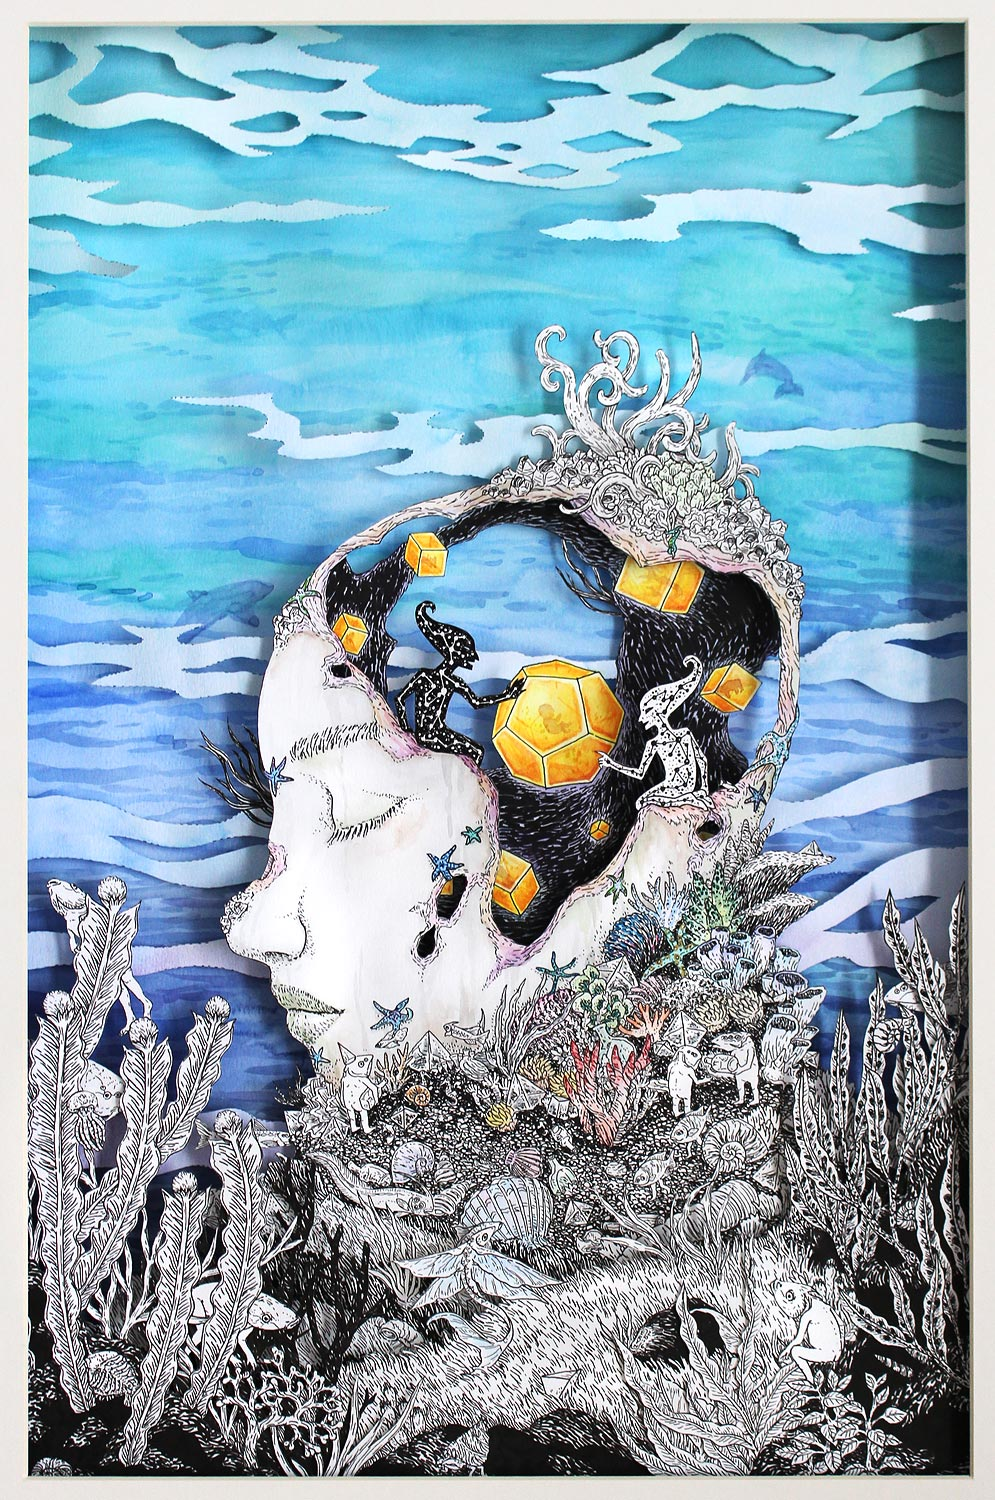 Submerged Dreams , Faber-Castell PITT pen and watercolour on layered paper cutout, 59.4x42cm, 2016, Young Art Taipei Expo 2016